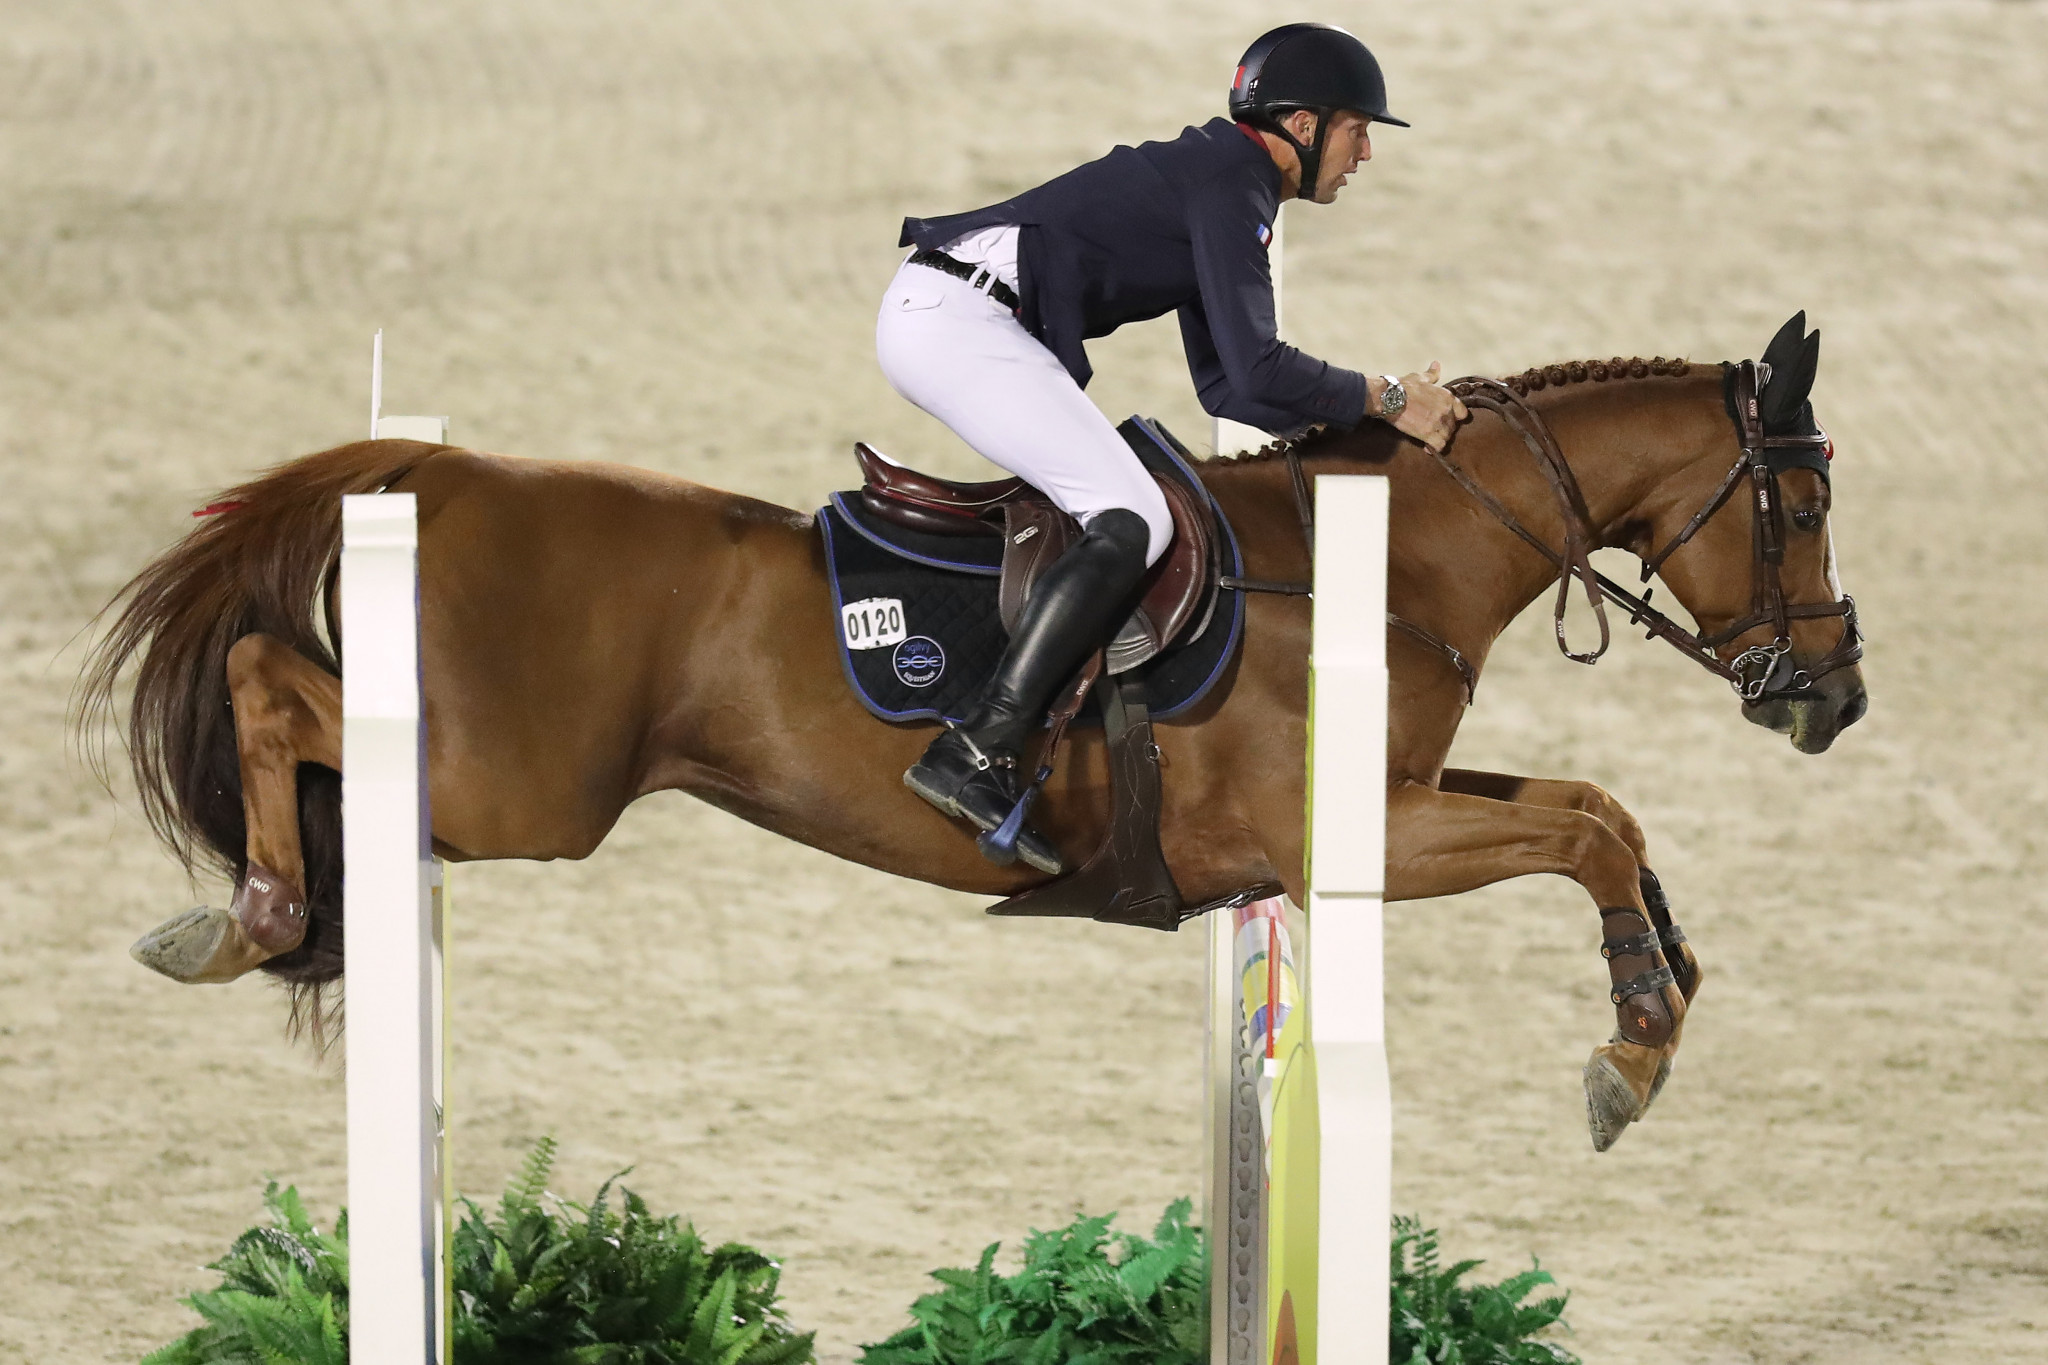 French riders Staut and Epaillard leaders after first round of Berlin Global Champions League